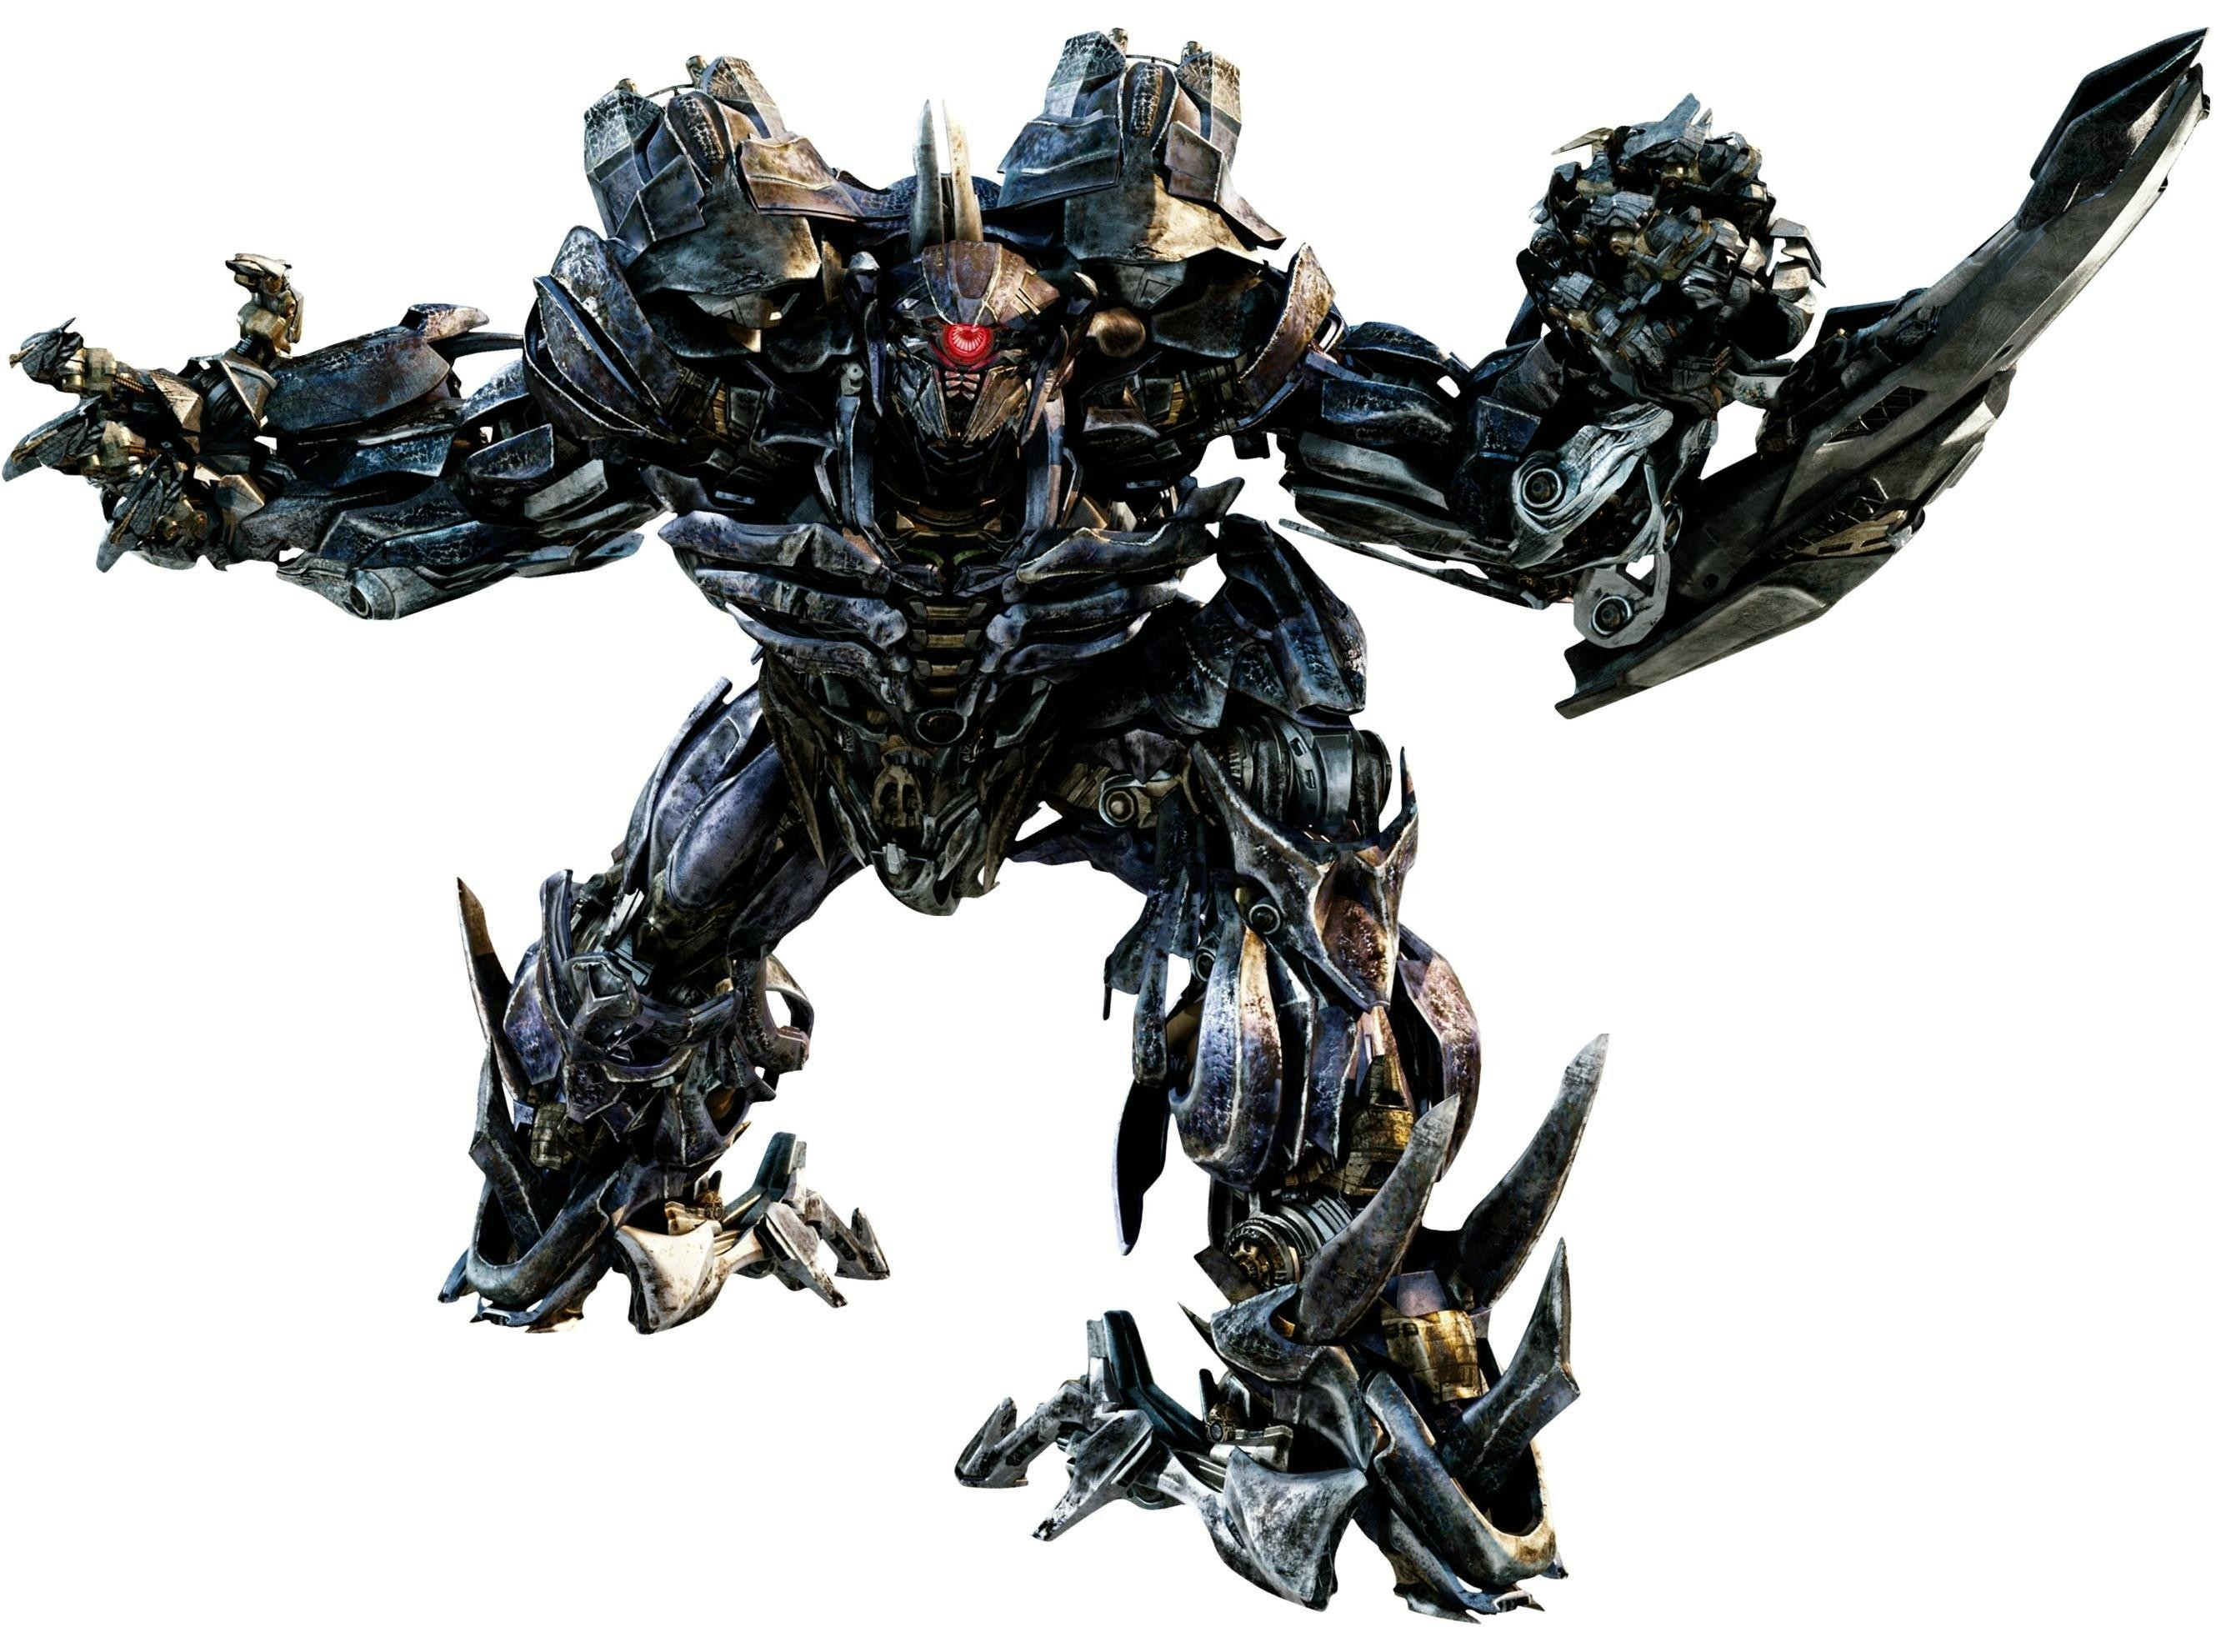 Shockwave wallpapers 71 images - Transformers tapete ...